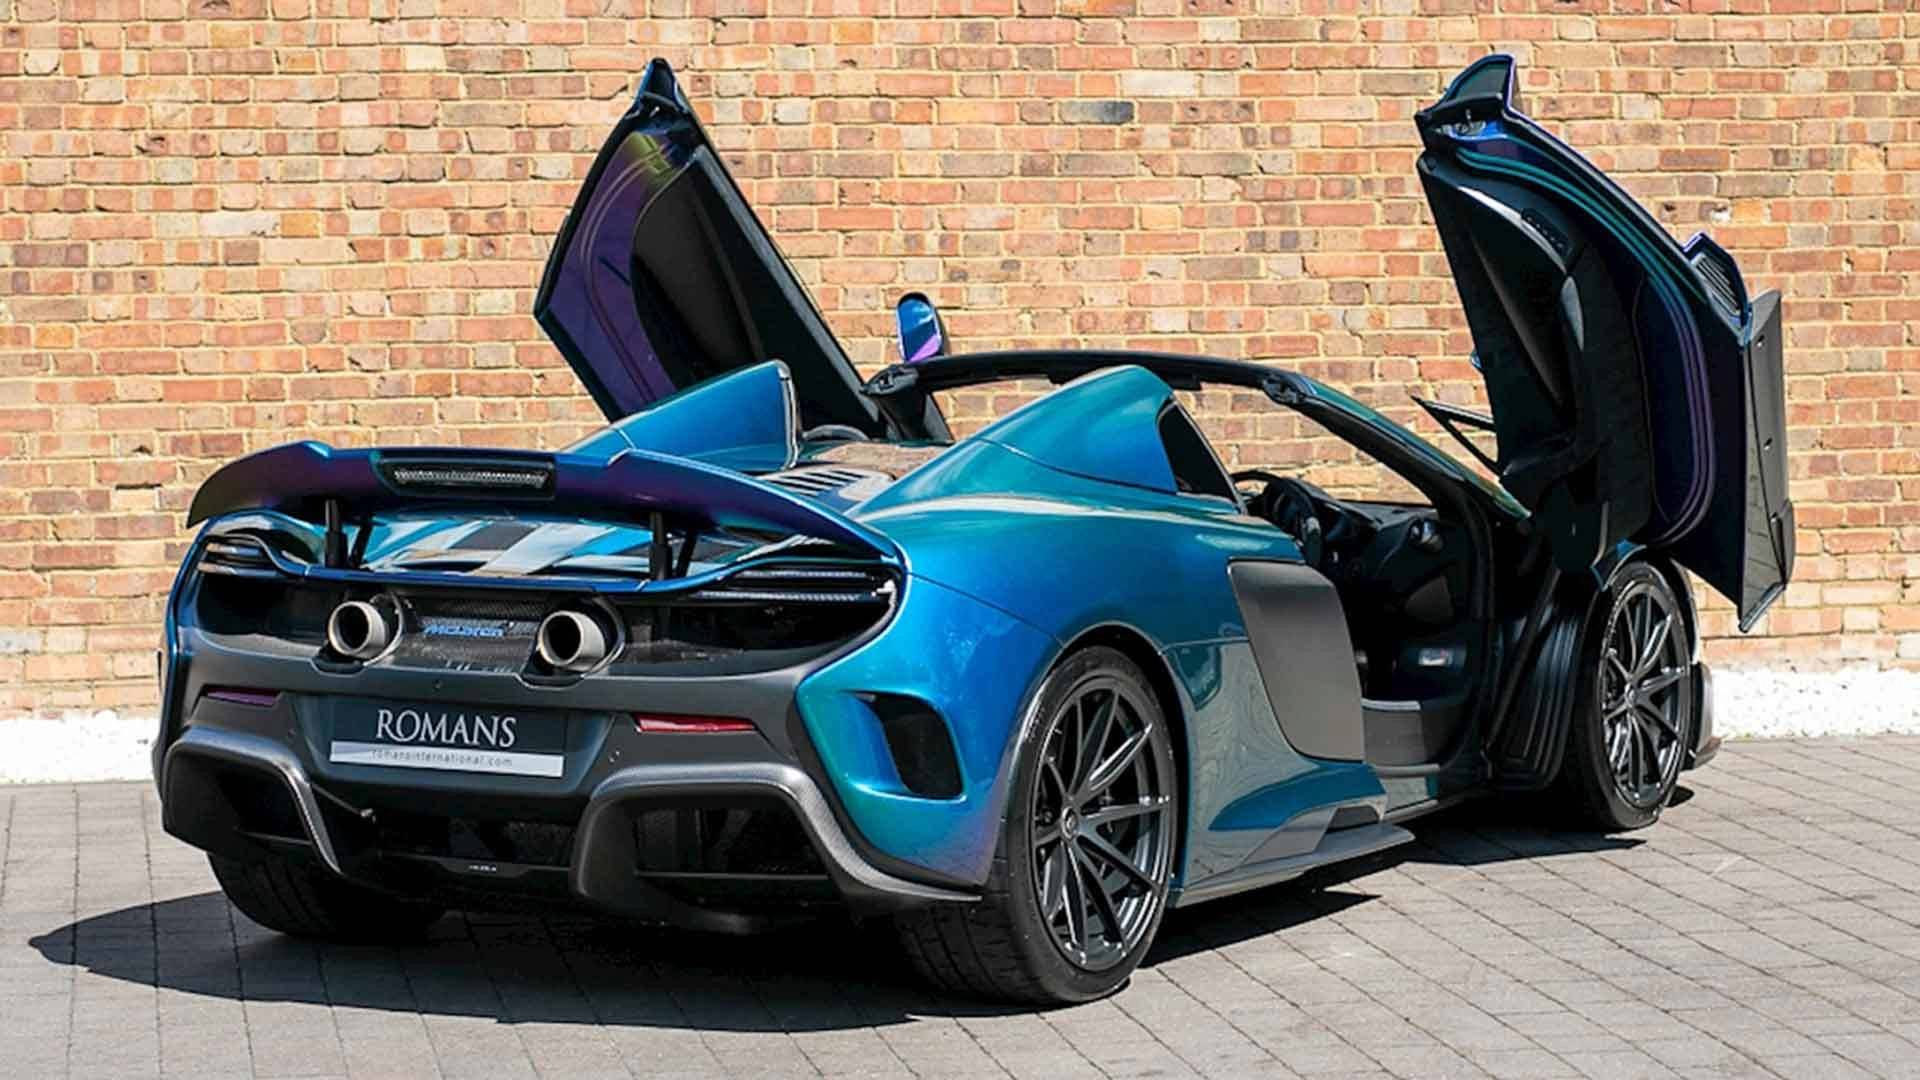 mclaren-675lt-spider-in-chameleon-paint (7)